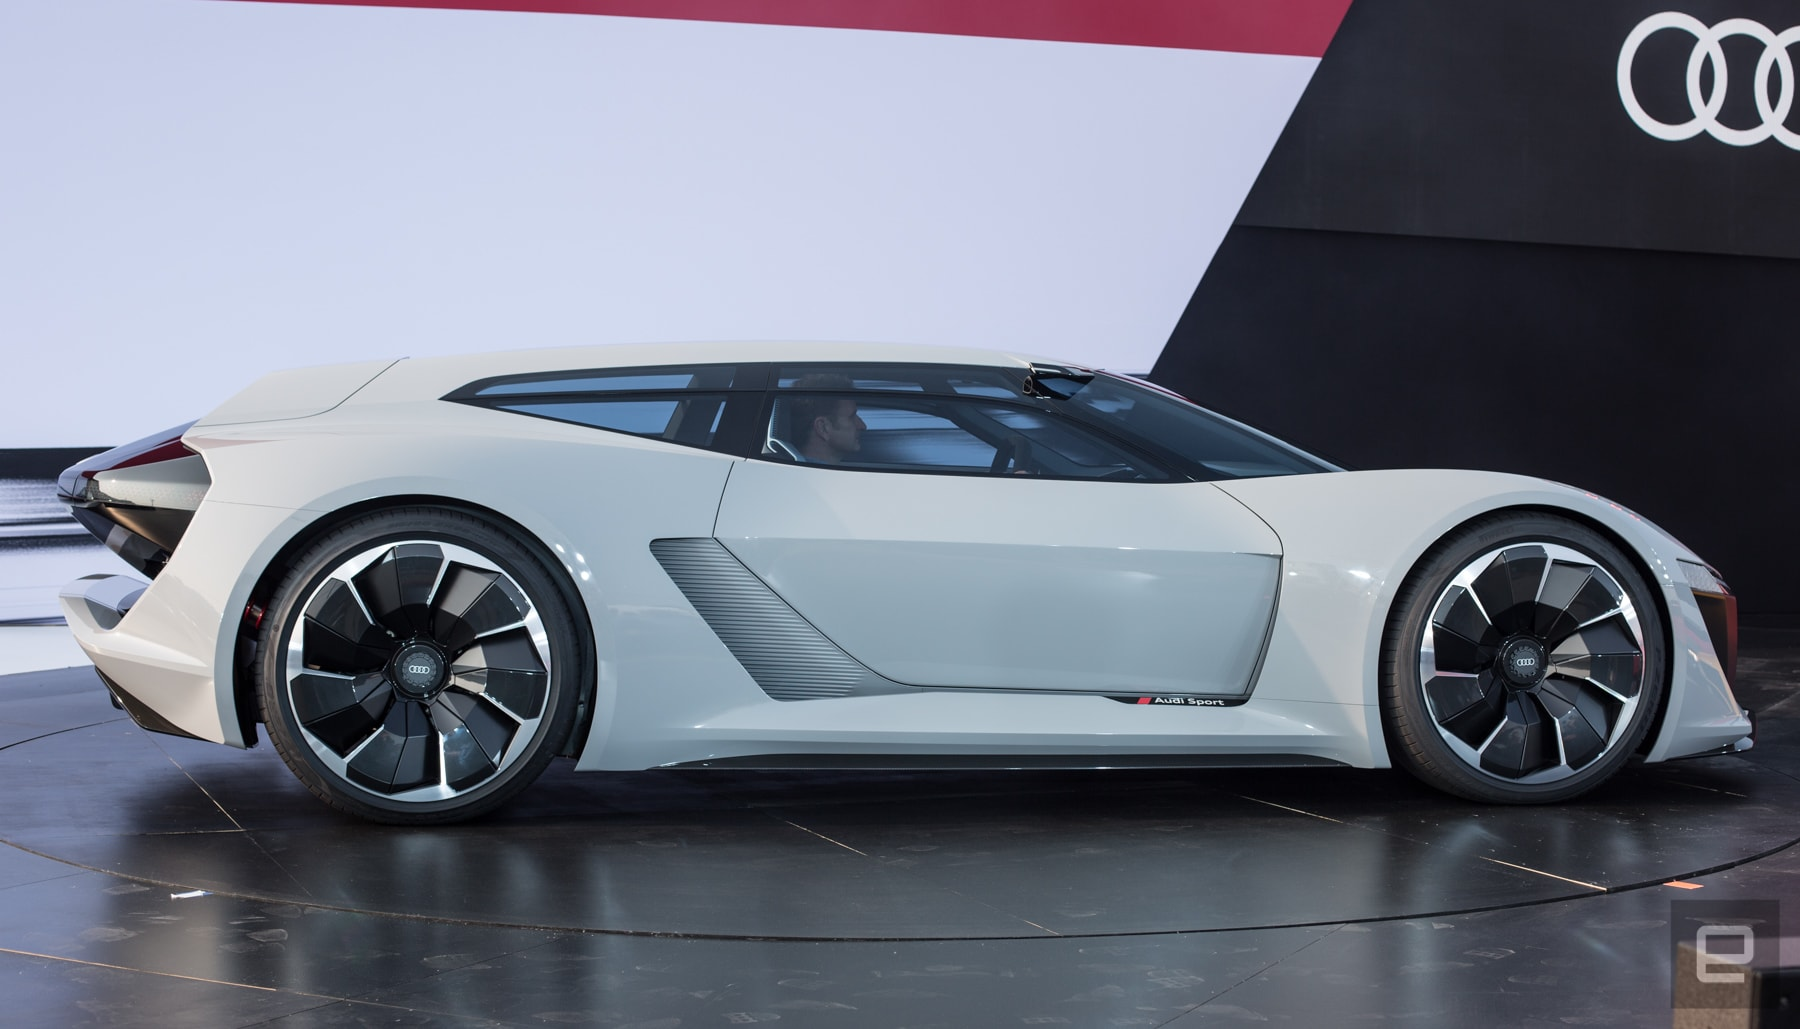 Audi S Pb 18 E Tron Is A Supercar Spaceship